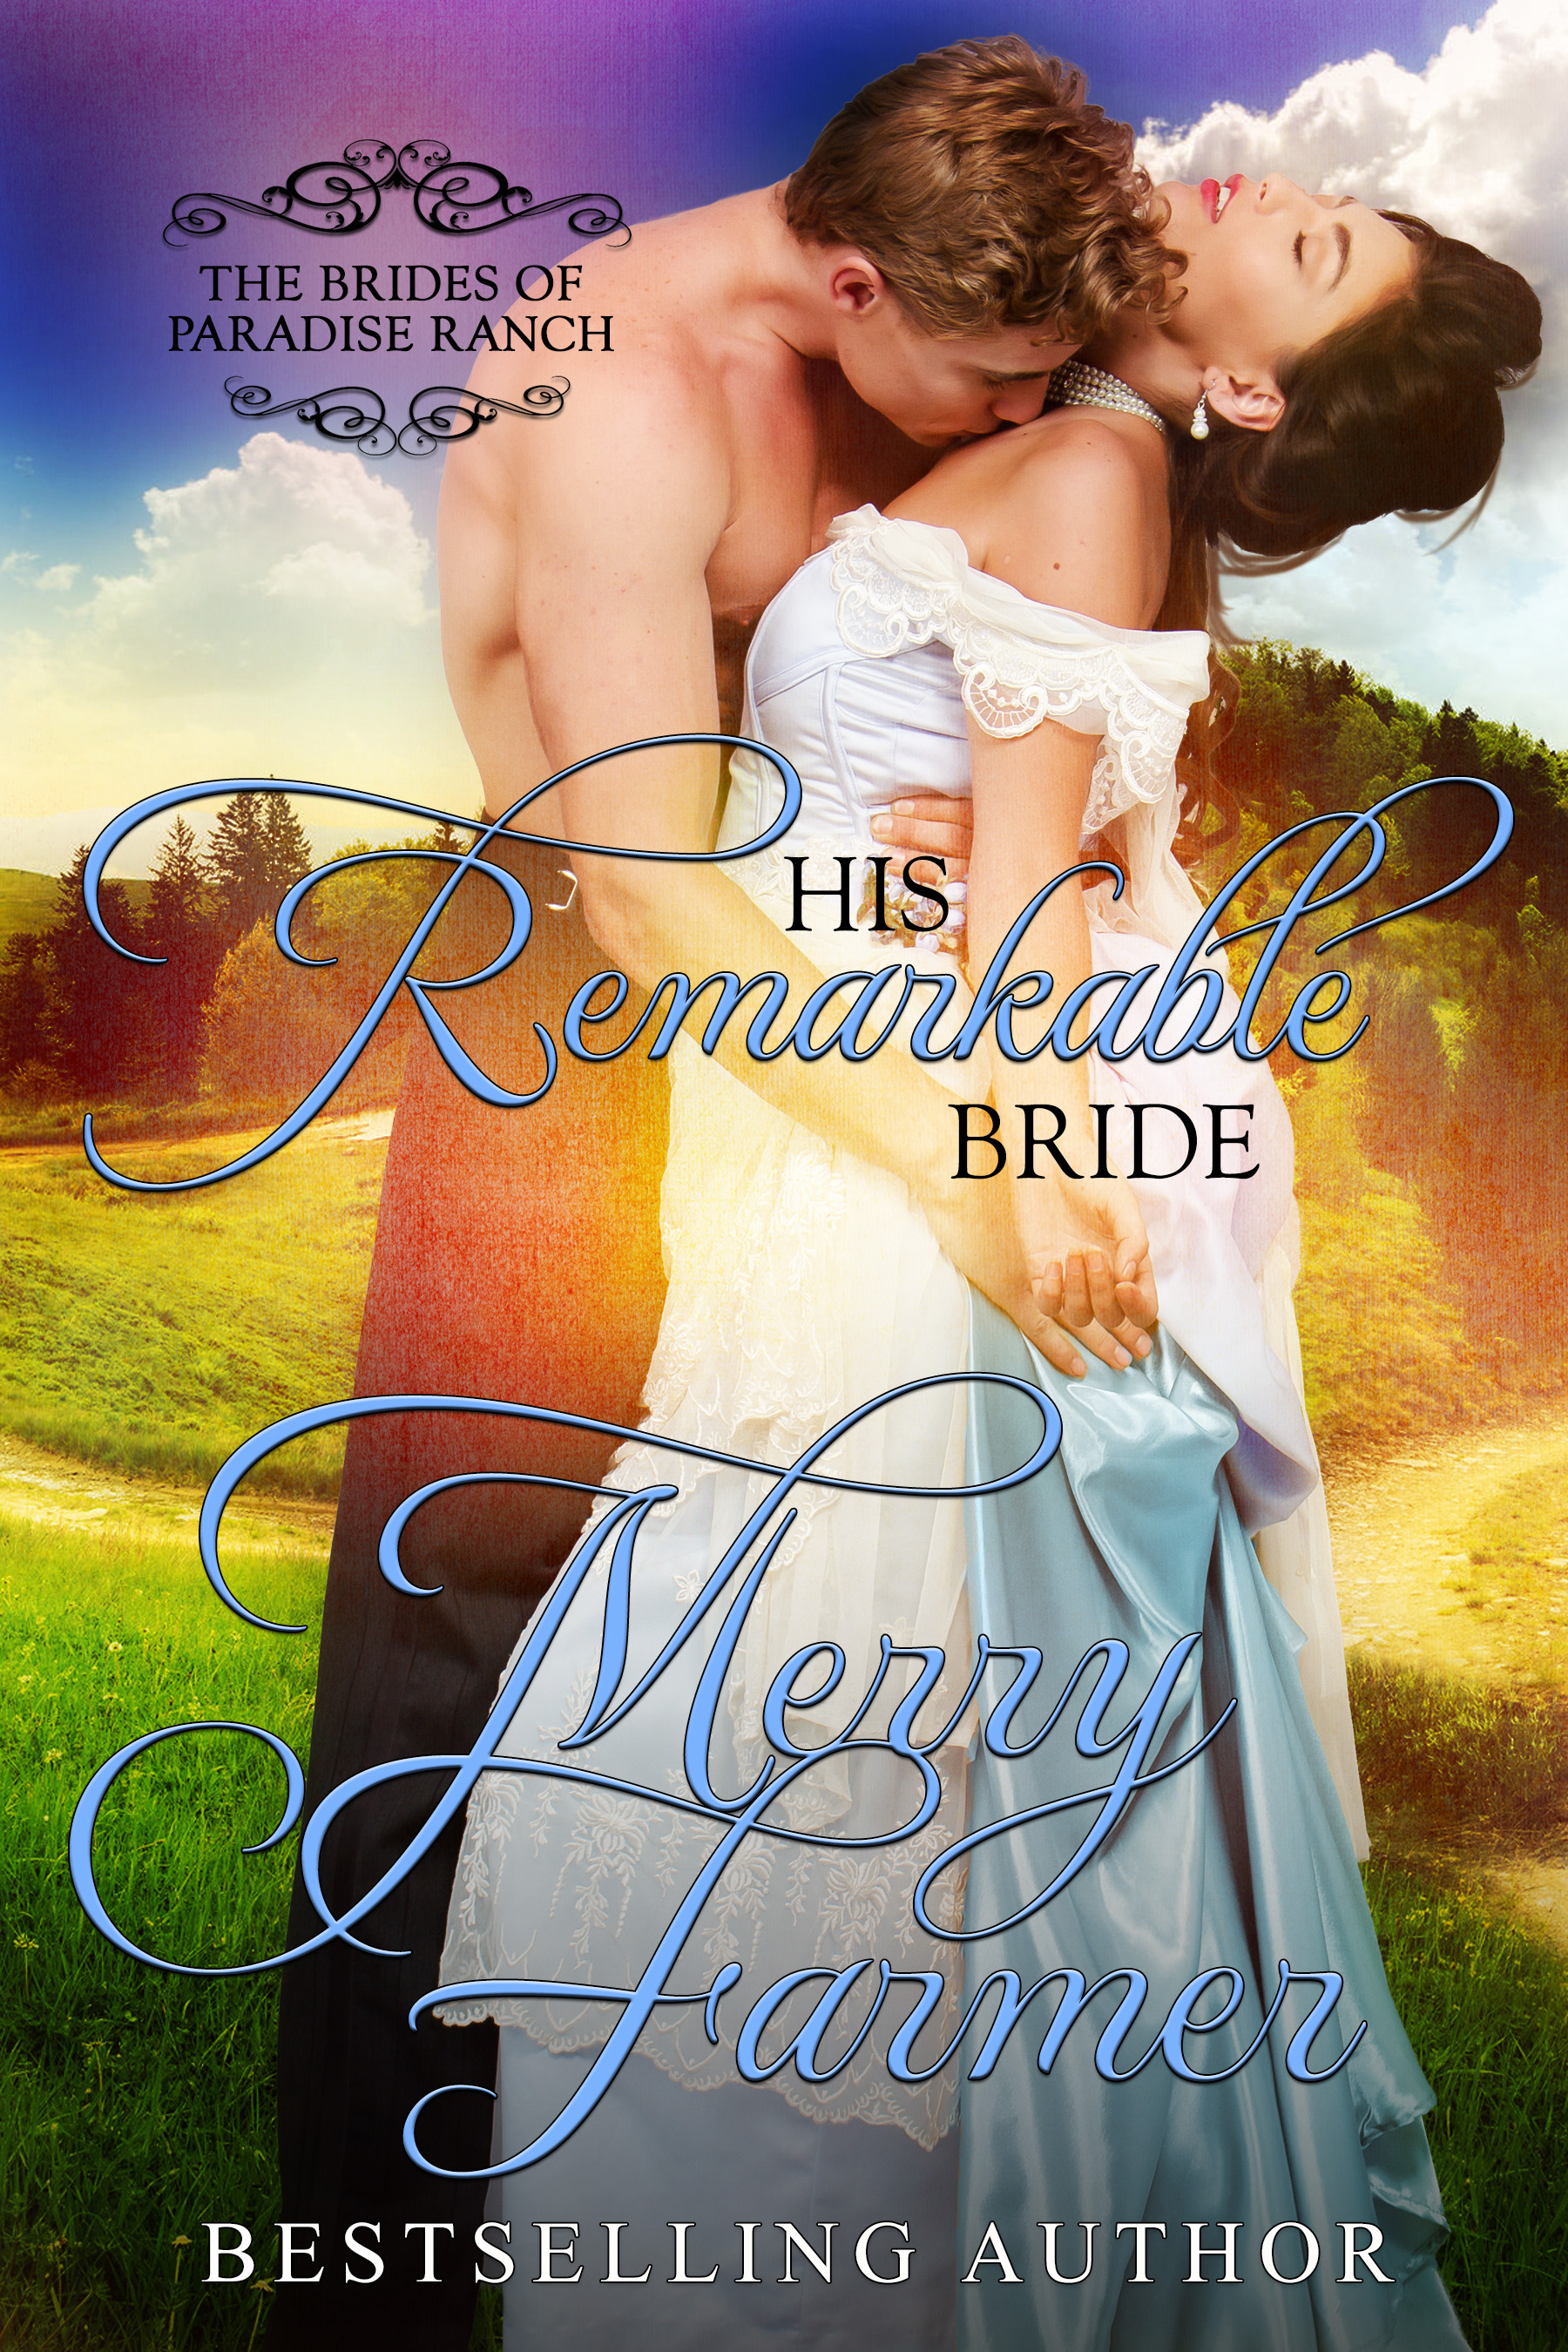 """His Remarkable Bride (Book 6) - Everybody in Haskell, Wyoming knows that railroad stationmaster Athos Strong, widower and father of eight rambunctious children, needs a new bride. Even Athos knows it, but being a single father and a responsible stationmaster doesn't leave him time for romance. It barely leaves him time to remember the hopes and dreams of his younger self. Once, he dreamed of being a hero, a valiant musketeer, like his namesake, but then life took over. He sends away to Hurst Home for a mail-order bride, not expecting anything more than a friend to help him raise his brood. The last thing he expects is love…Elspeth Leonard was once a rising star of the British nobility, until she was seduced into following a wealthy American across the sea. Betrayed, abandoned, and disowned by her family, she has spent the last six years struggling to keep her dignity as a third-rate governess and tutor. Finding Hurst Home was her saving grace. So when she was offered the chance to go west as a bride for a man with eight children, she took it, expecting nothing more than a stable home…But between the lively and mischievous Strong children and the conniving and revenge-seeking Bonneville family, Elspeth has no idea what she's stepping into. When the children are taken away after allegations of neglect leveled against Athos by the Bonnevilles, Elspeth must step up to help Athos fight to keep his family together. What was supposed to be a mutually-beneficial, platonic marriage becomes something much more as both Athos and Elspeth come to see the heroism in the person they've married…The greatest heroes are sometimes found in the most ordinary hearts…PLEASE BE ADVISED: Steam Level = VERY HOTIf you would like to read this story without any """"scenes,"""" check out Elspeth: The Remarkable Bride."""